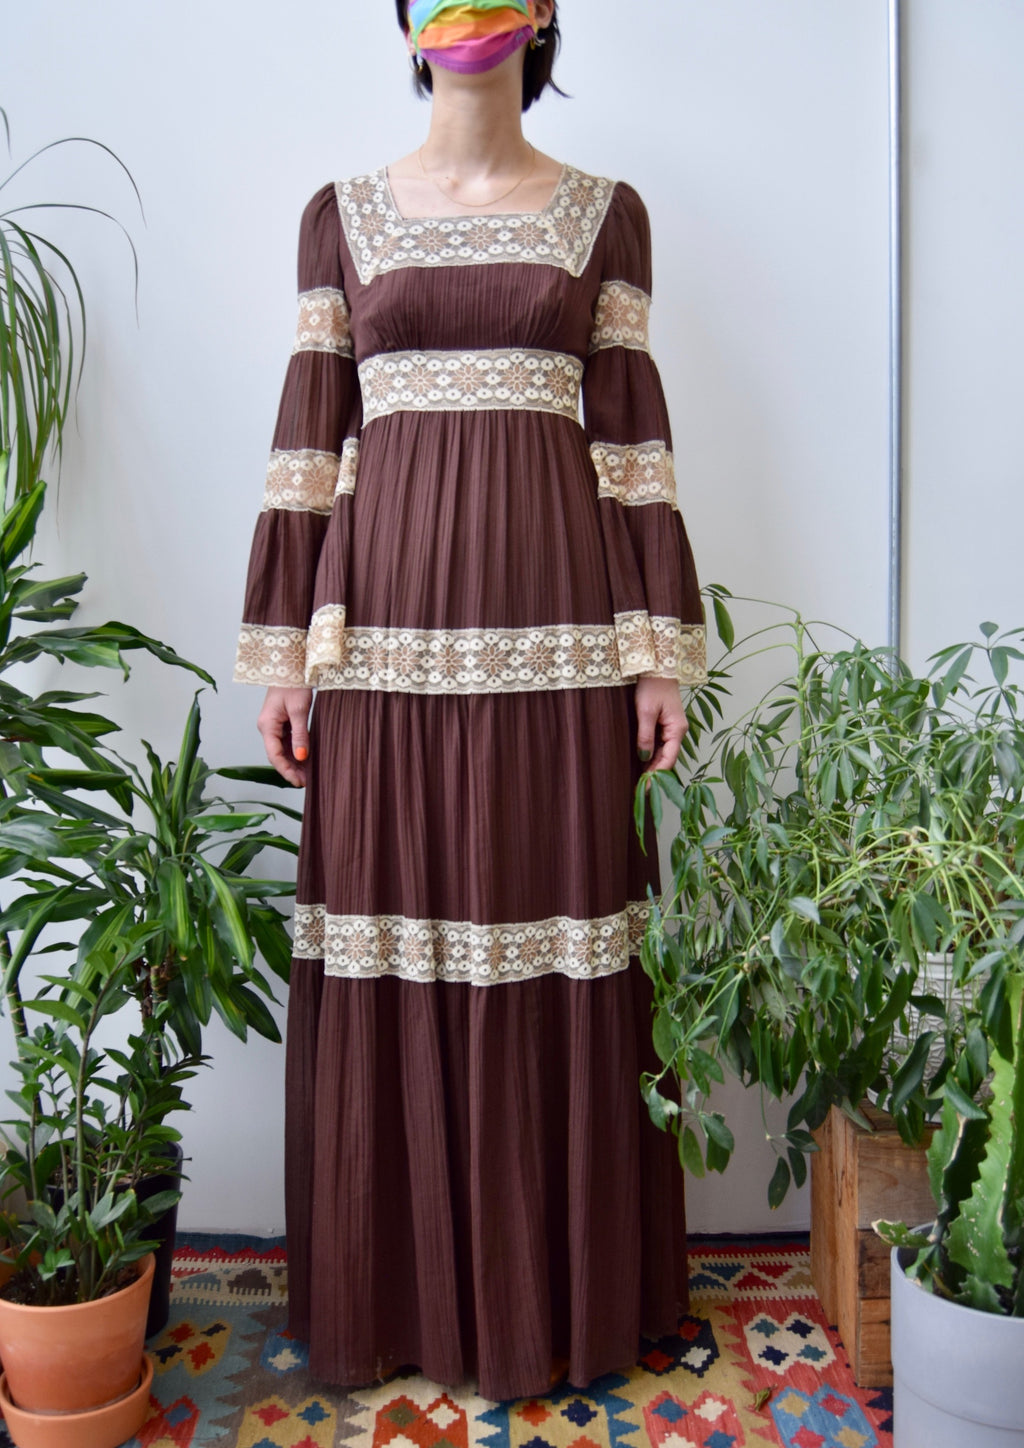 Seventies Gauzy Renaissance Dress